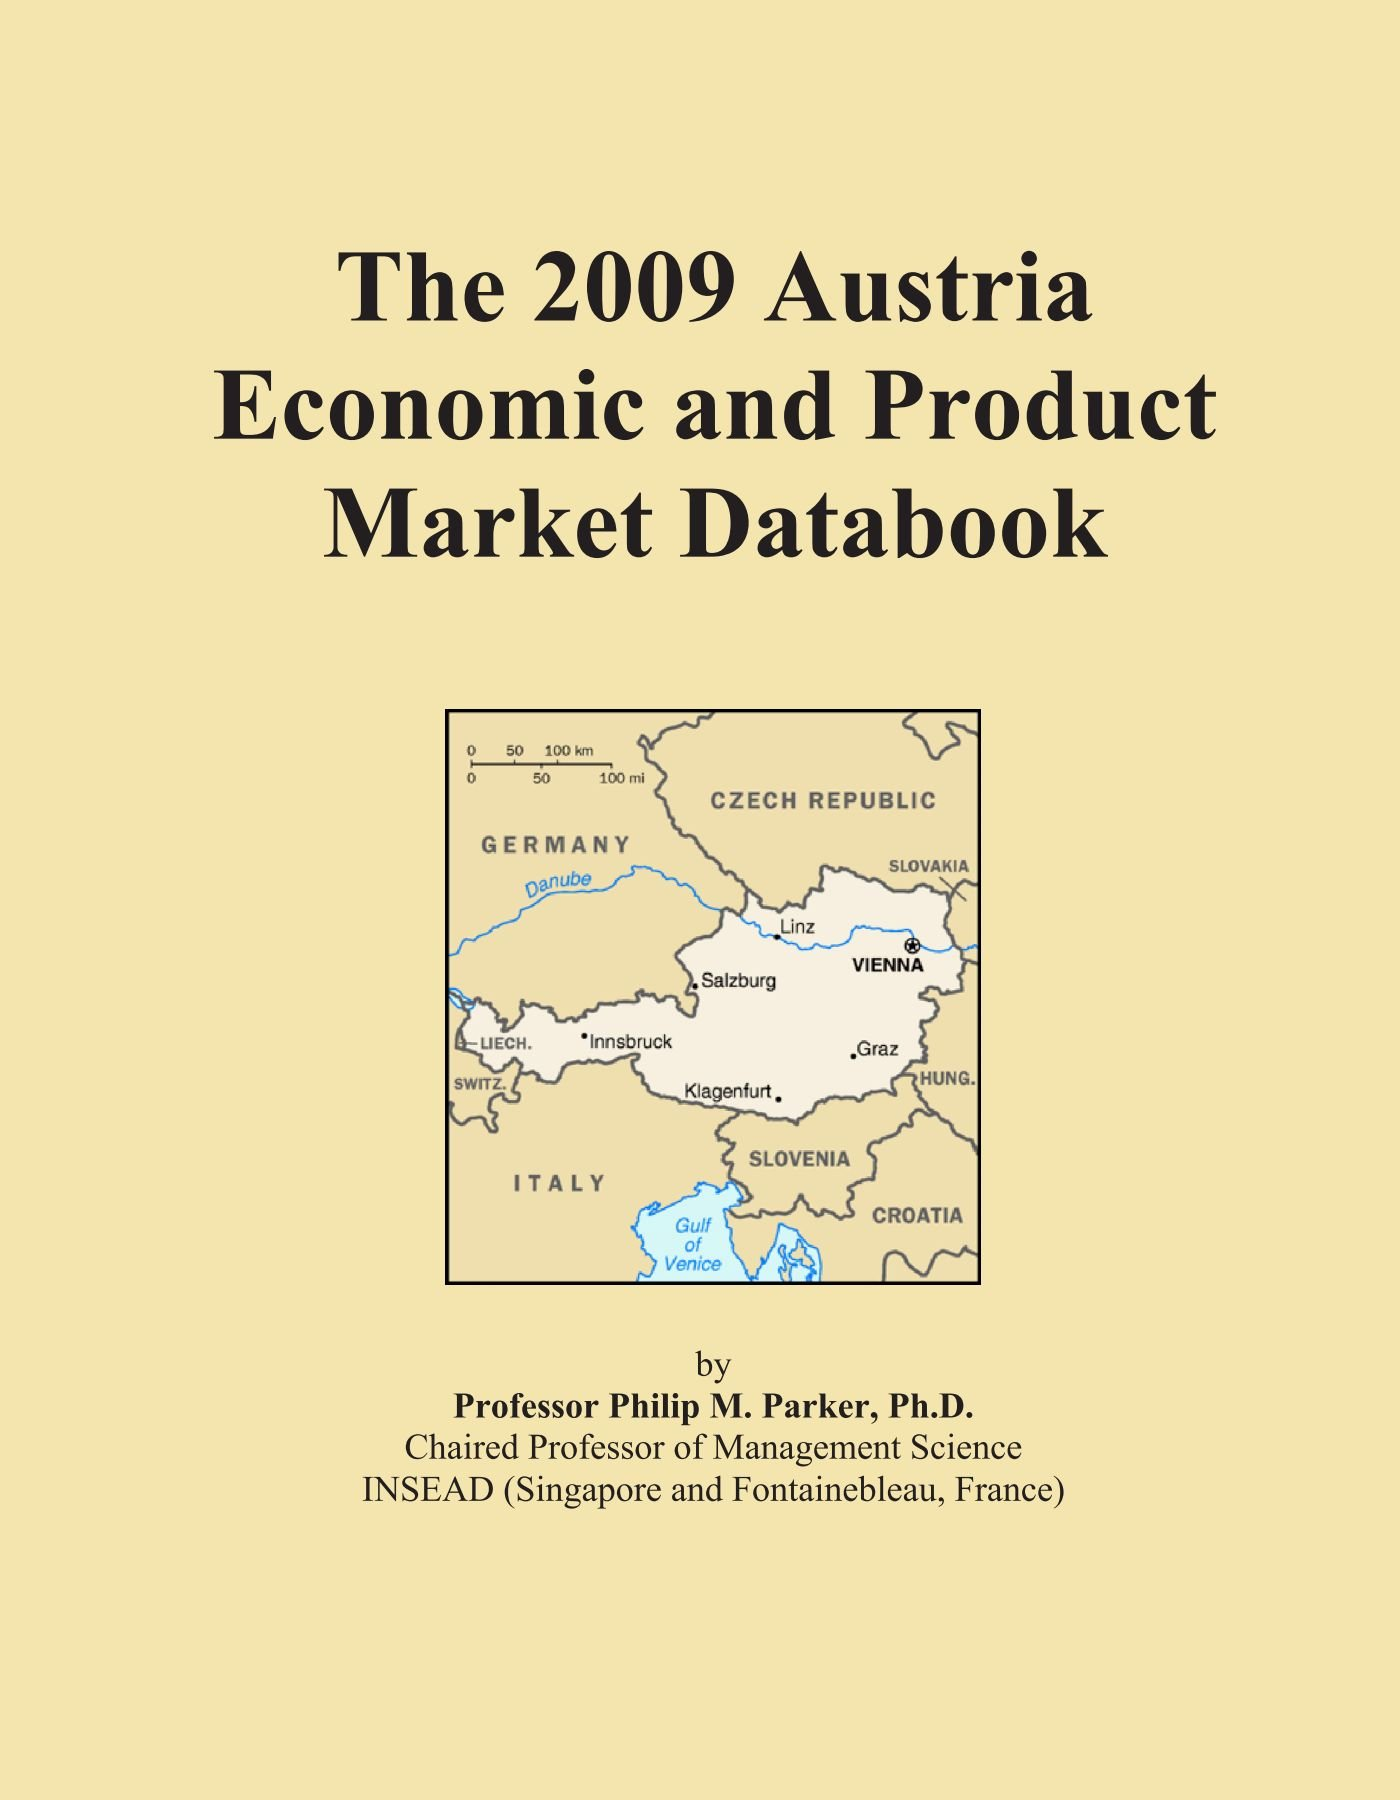 The 2009 Austria Economic and Product Market Databook pdf